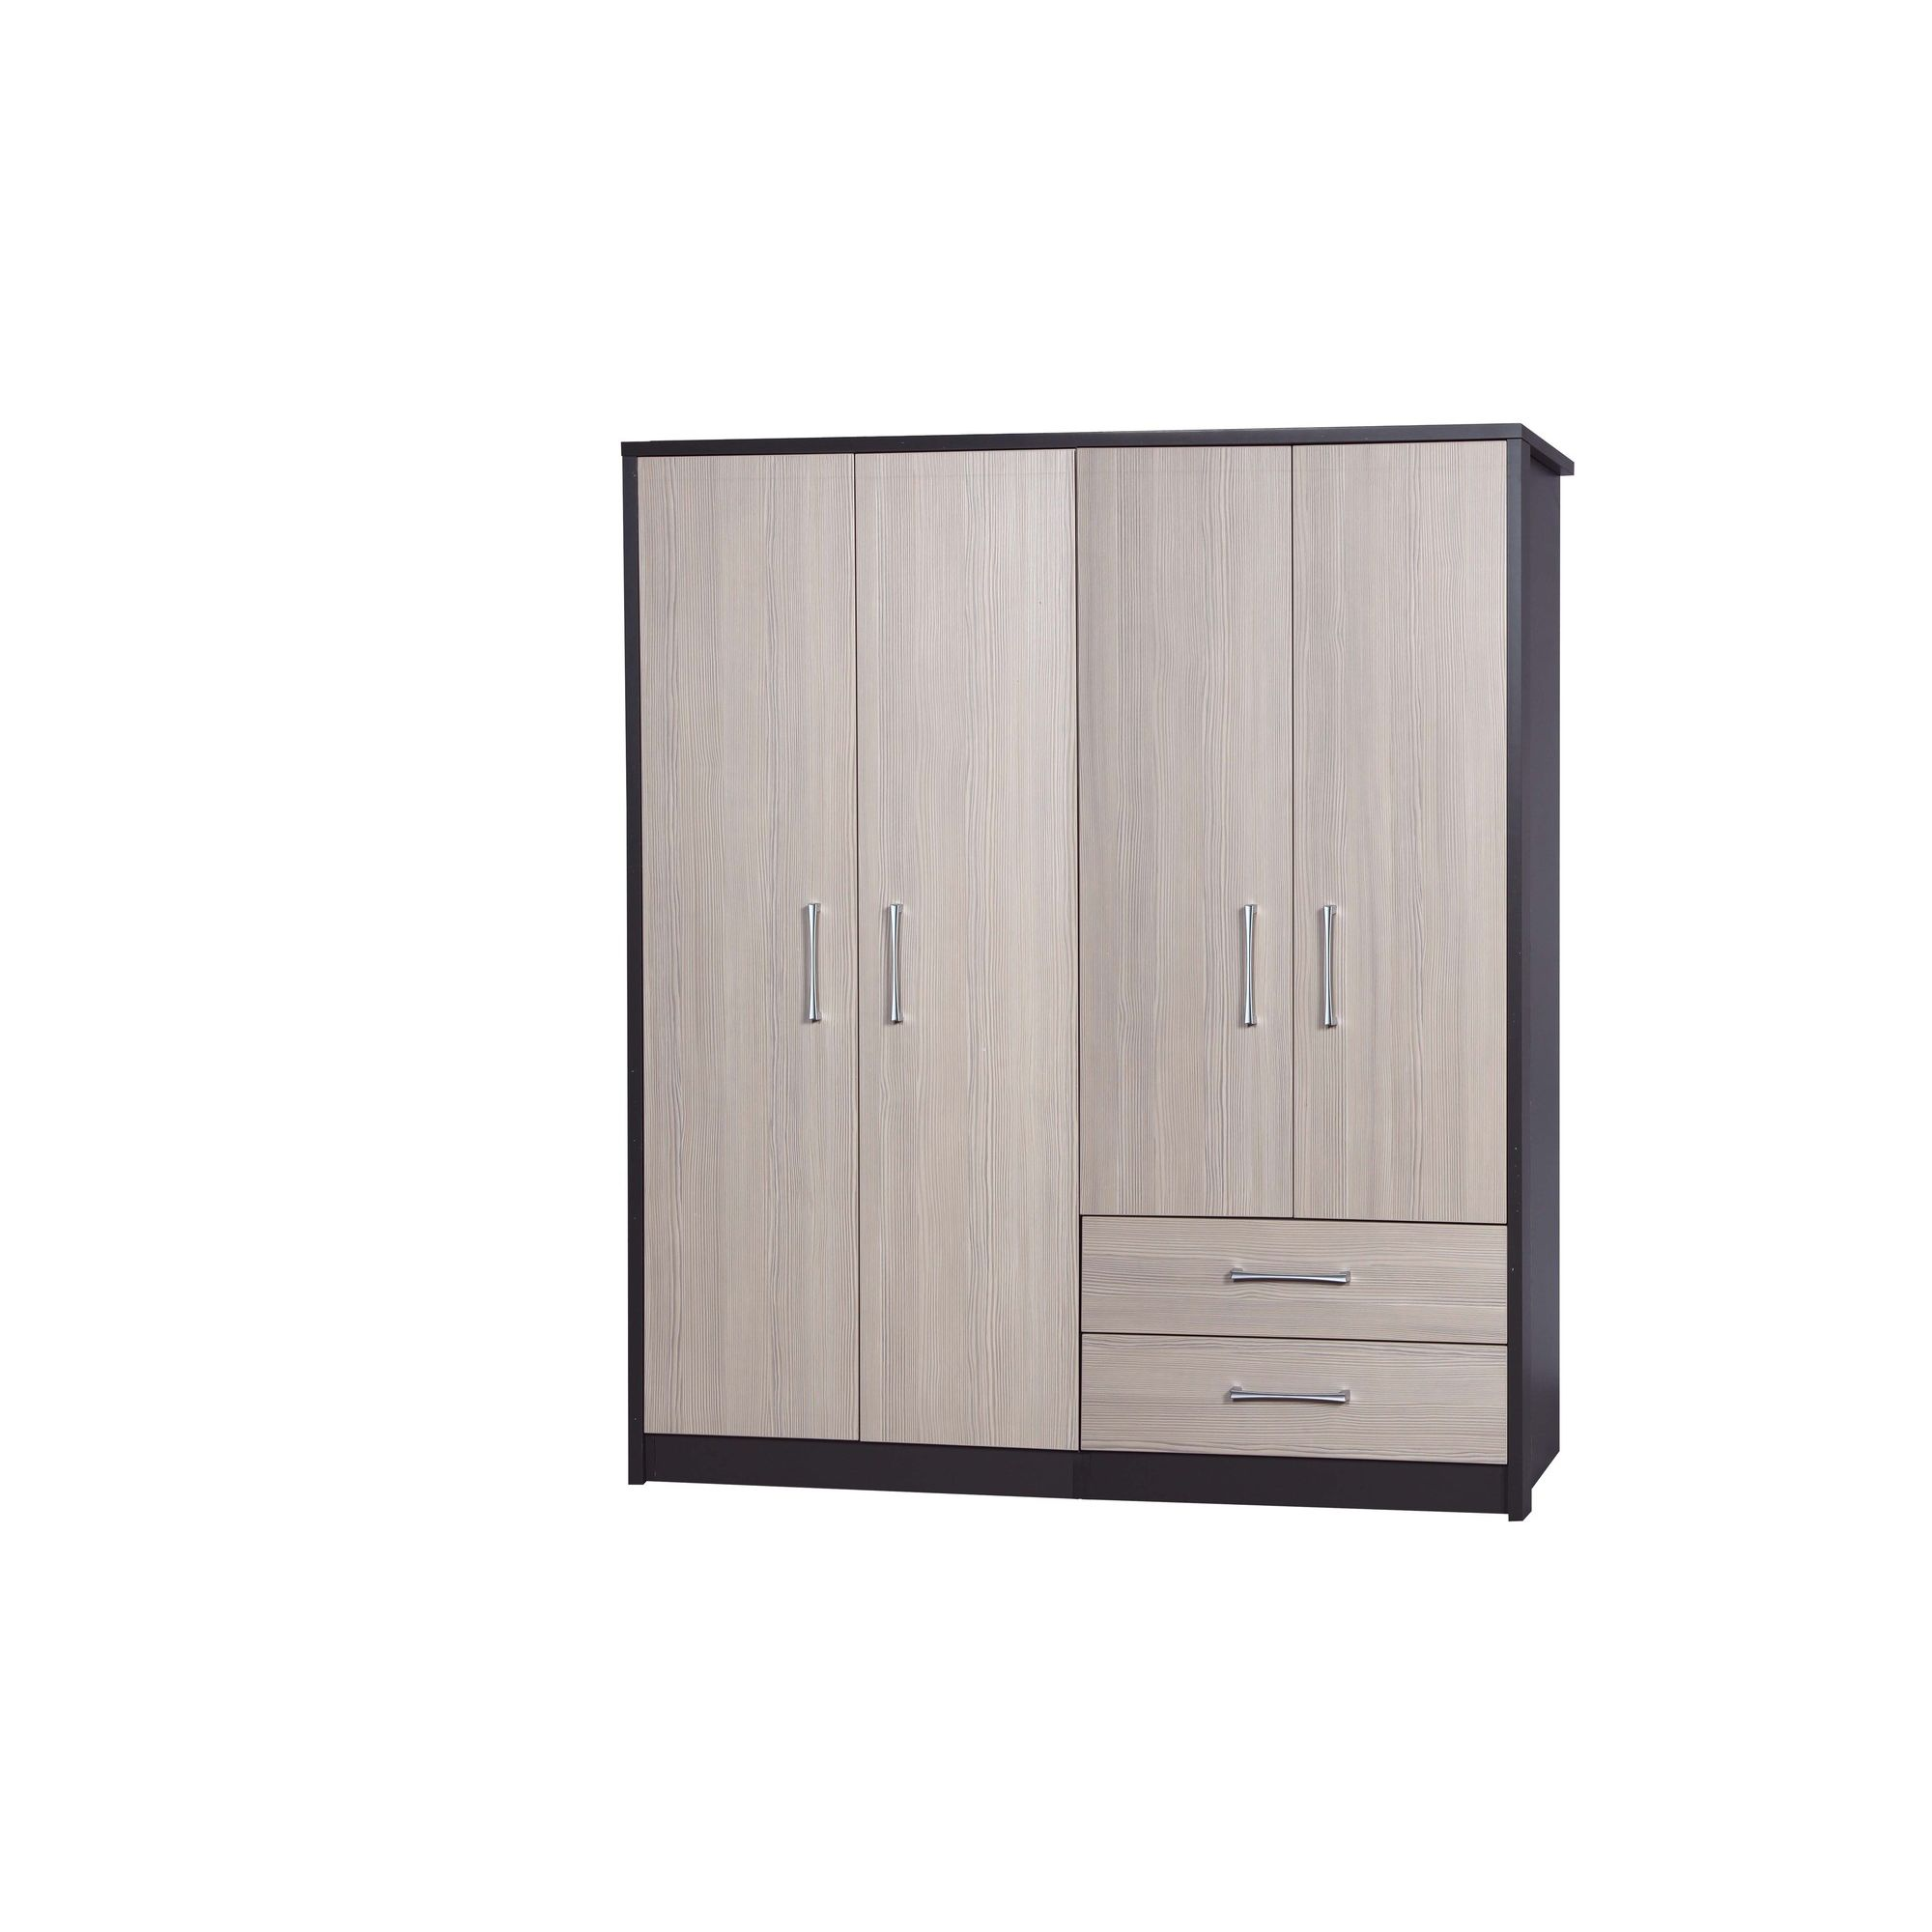 Alto Furniture Avola 4 Door Combi Wardrobe - Grey Carcass With White Avola at Tesco Direct